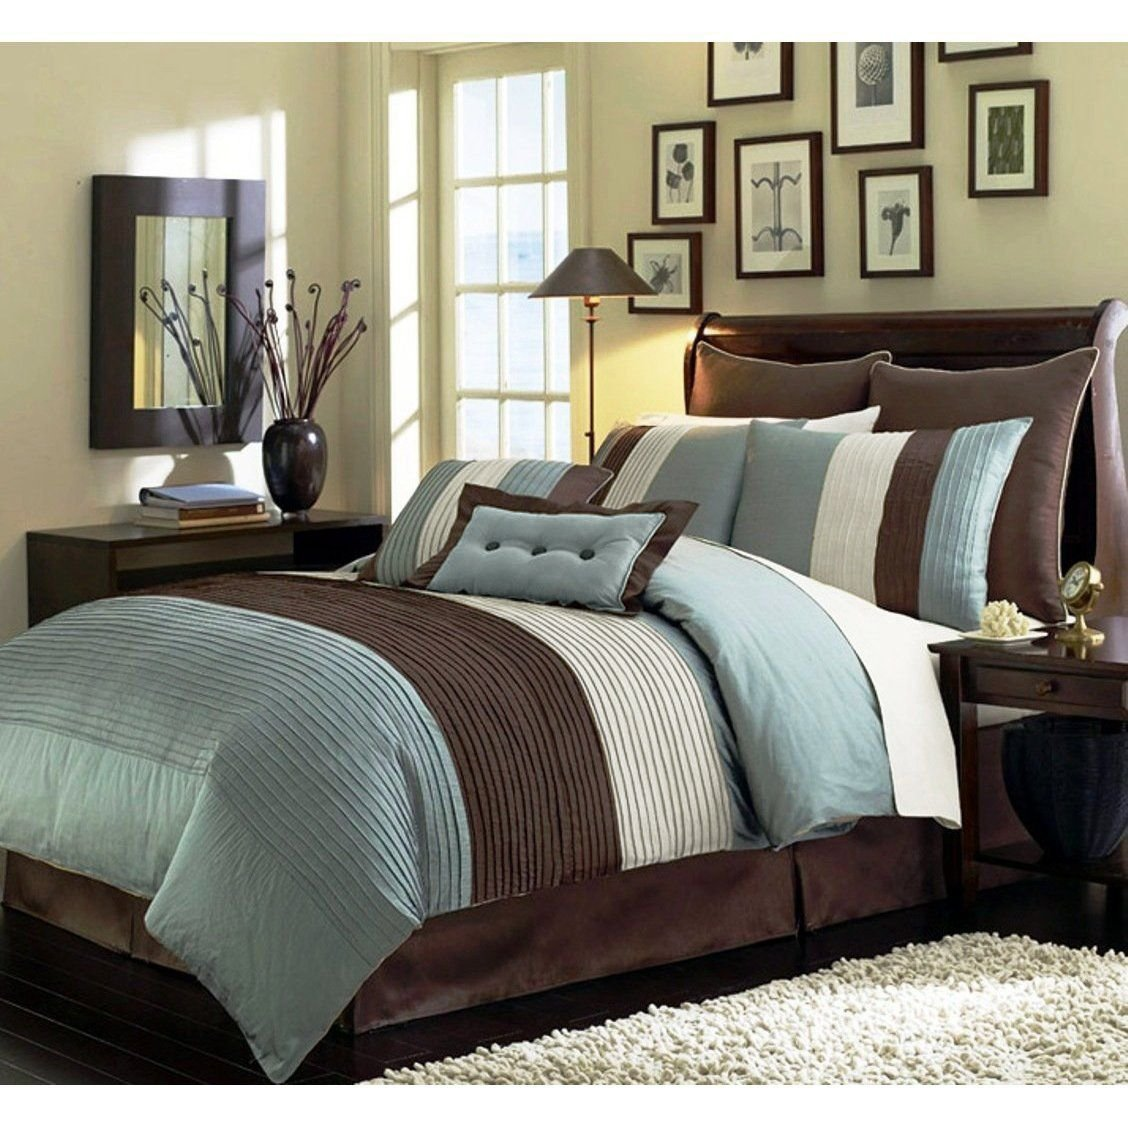 Chezmoi Collection 6-Piece Luxury Stripe Comforter Bed-in-a-Bag Set, Blue/Beige/Brown, Twin